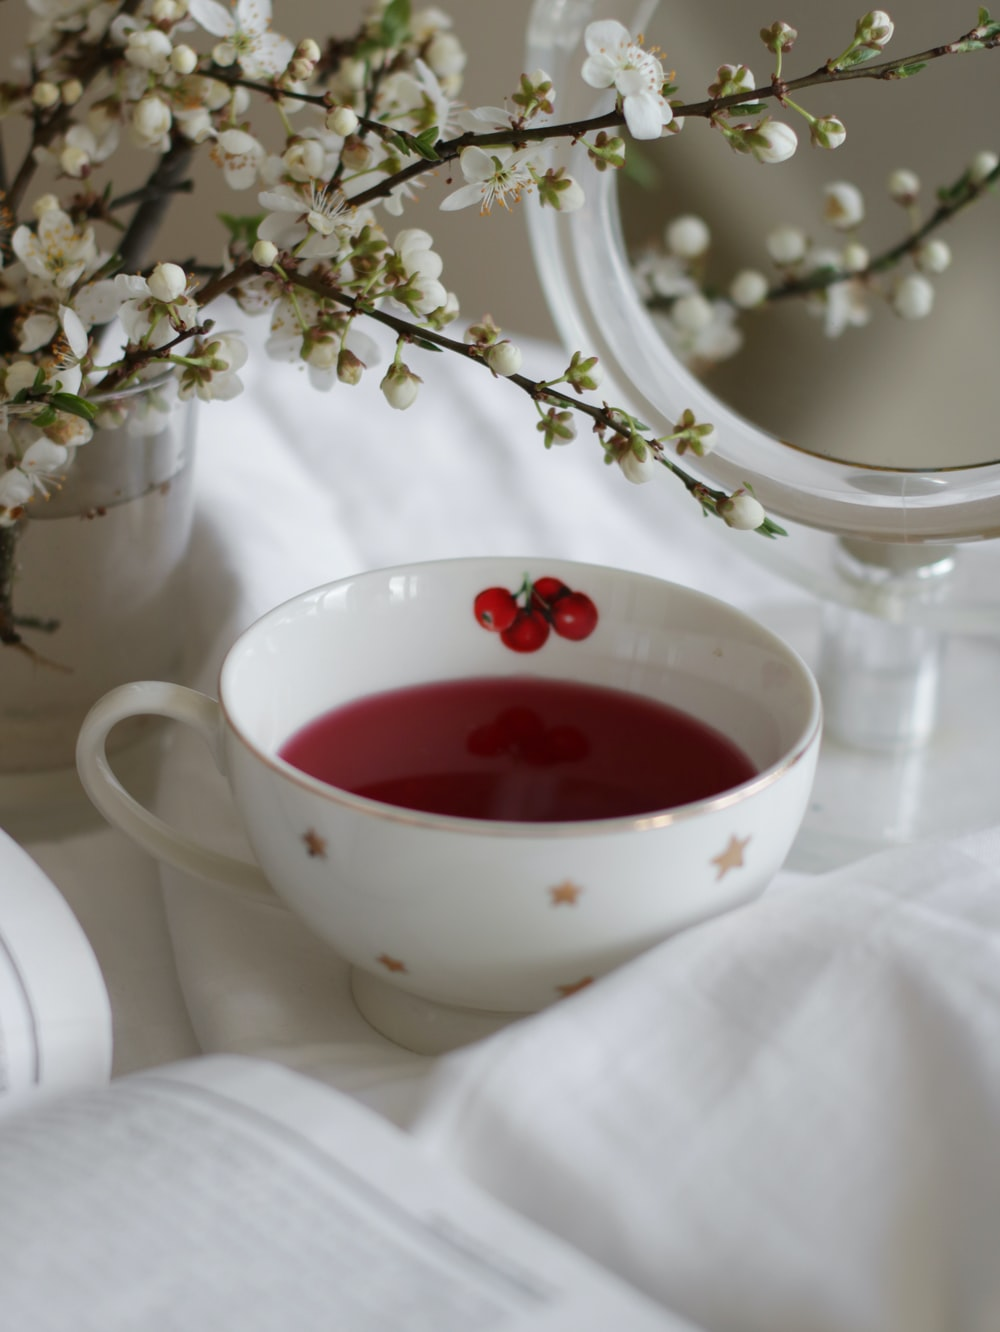 white ceramic teacup with red liquid inside